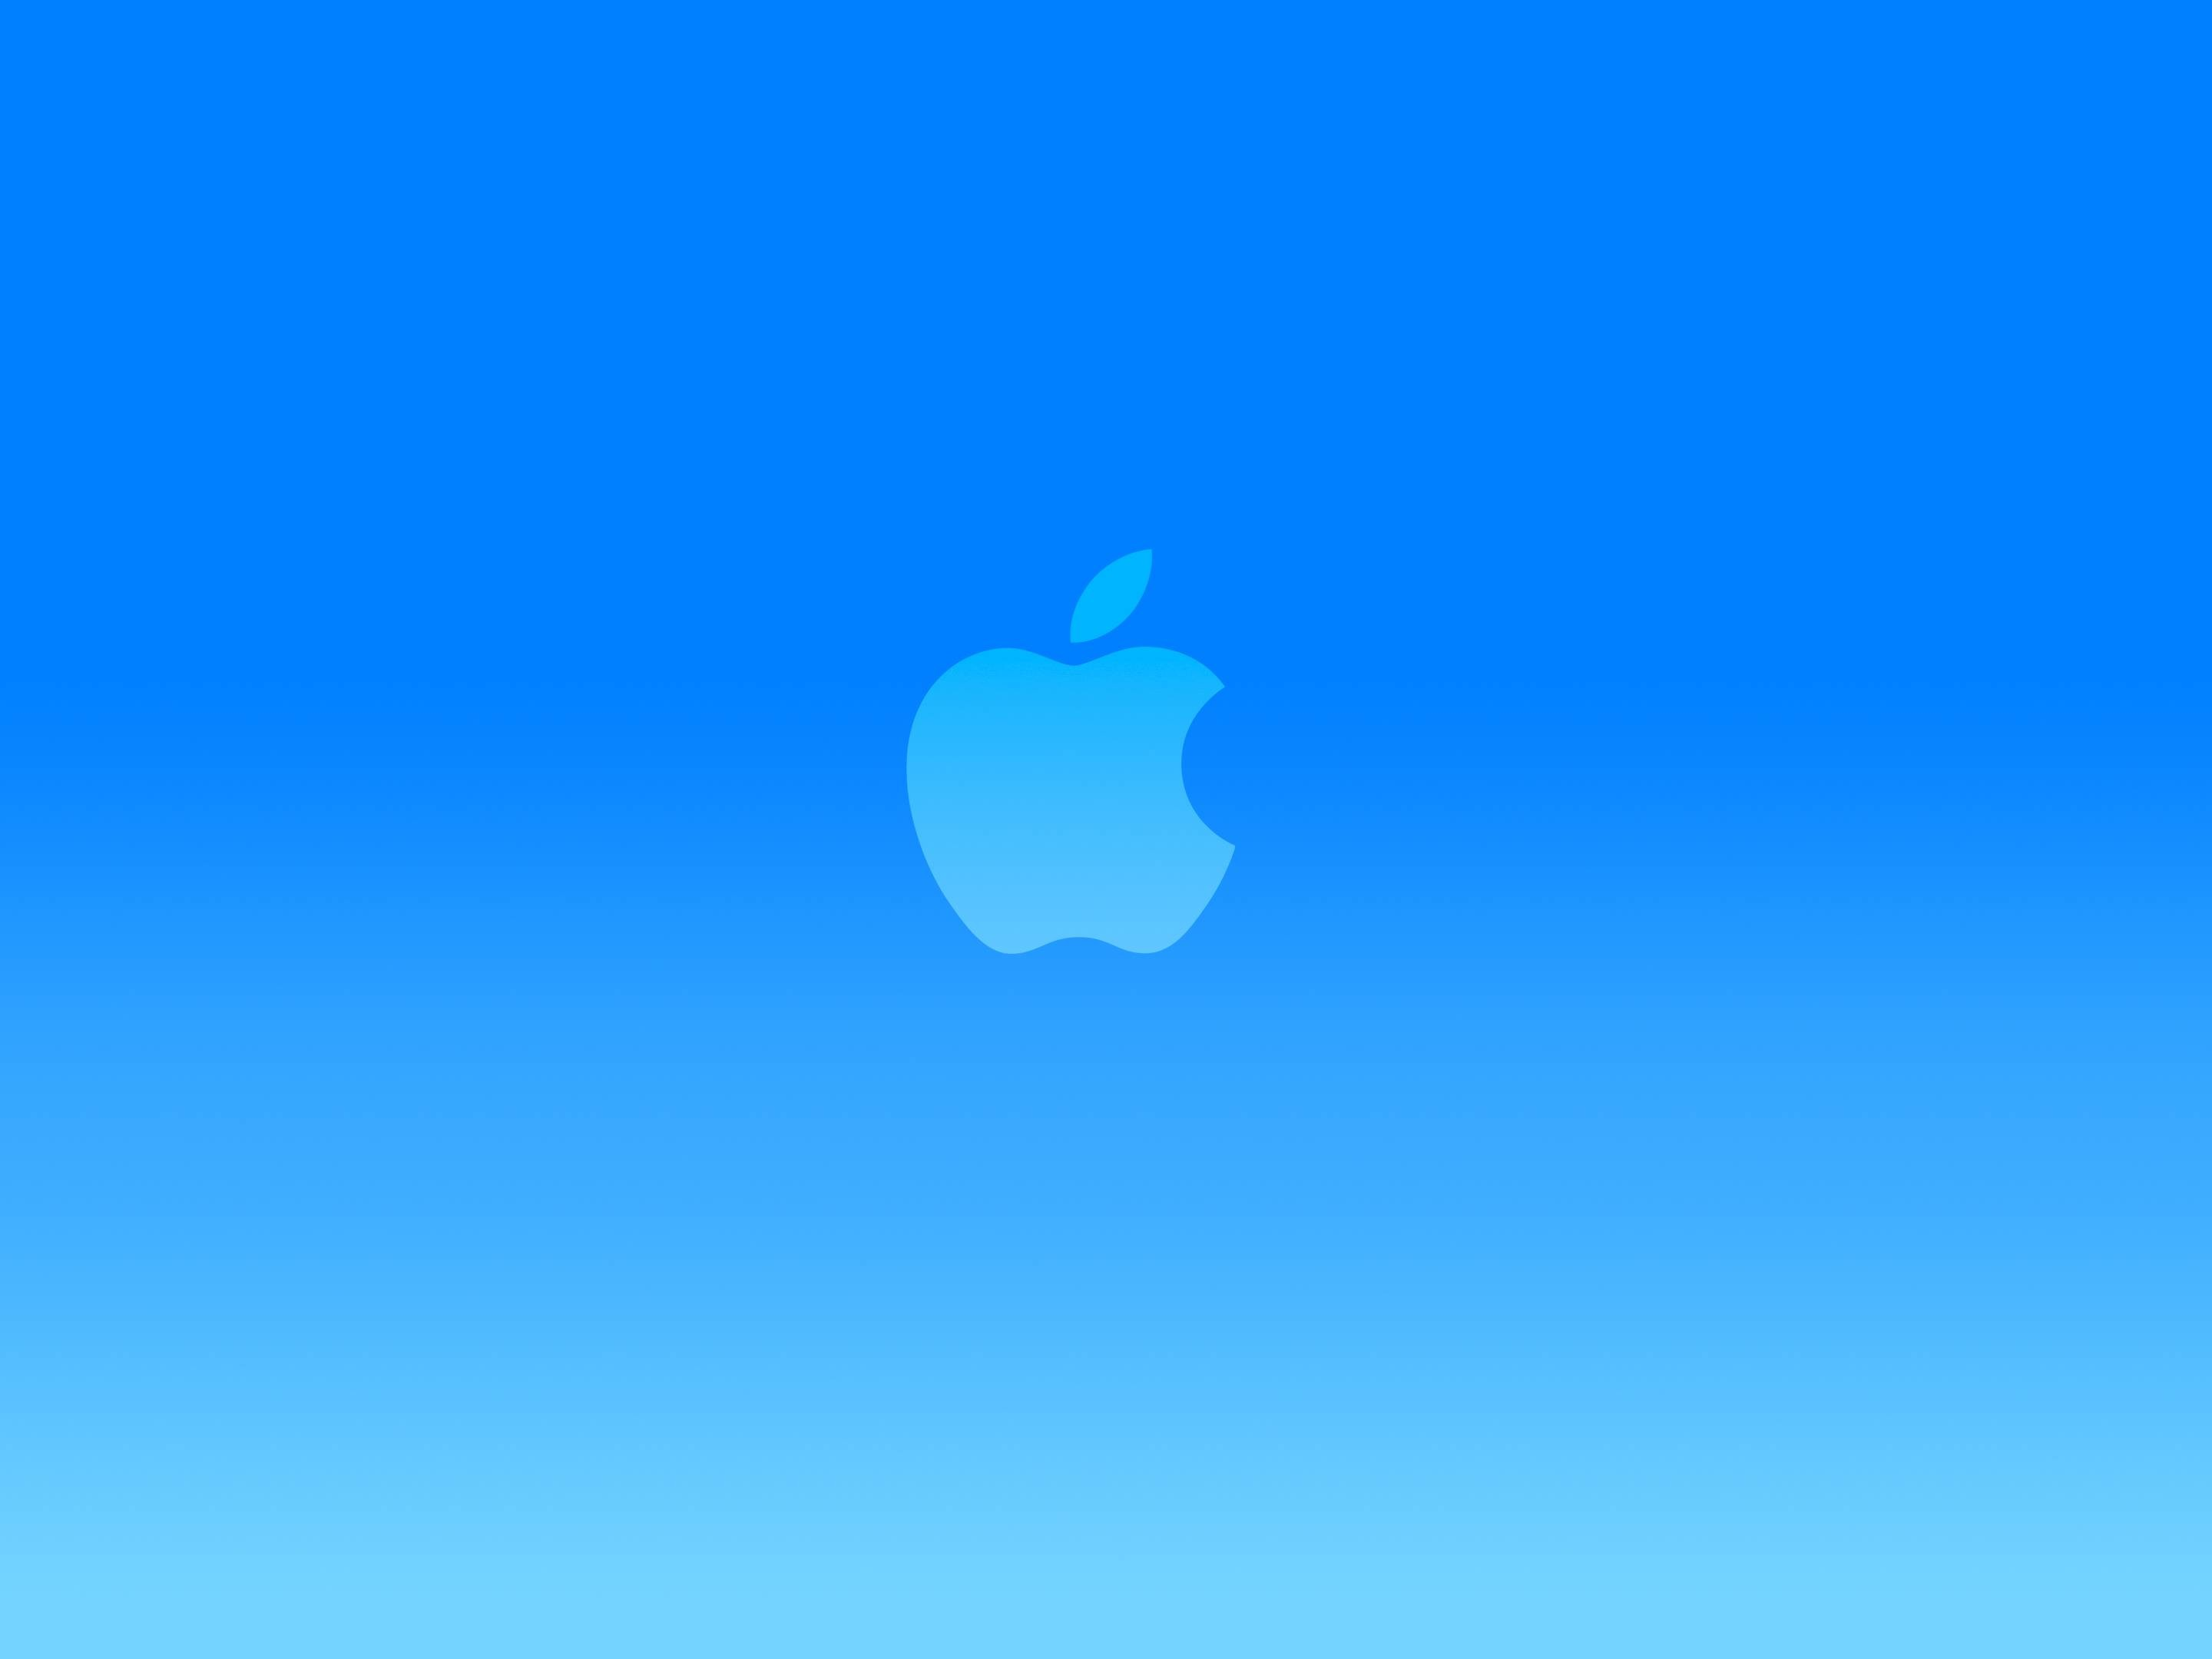 2880x2160 20 Excellent Apple Logo Wallpapers